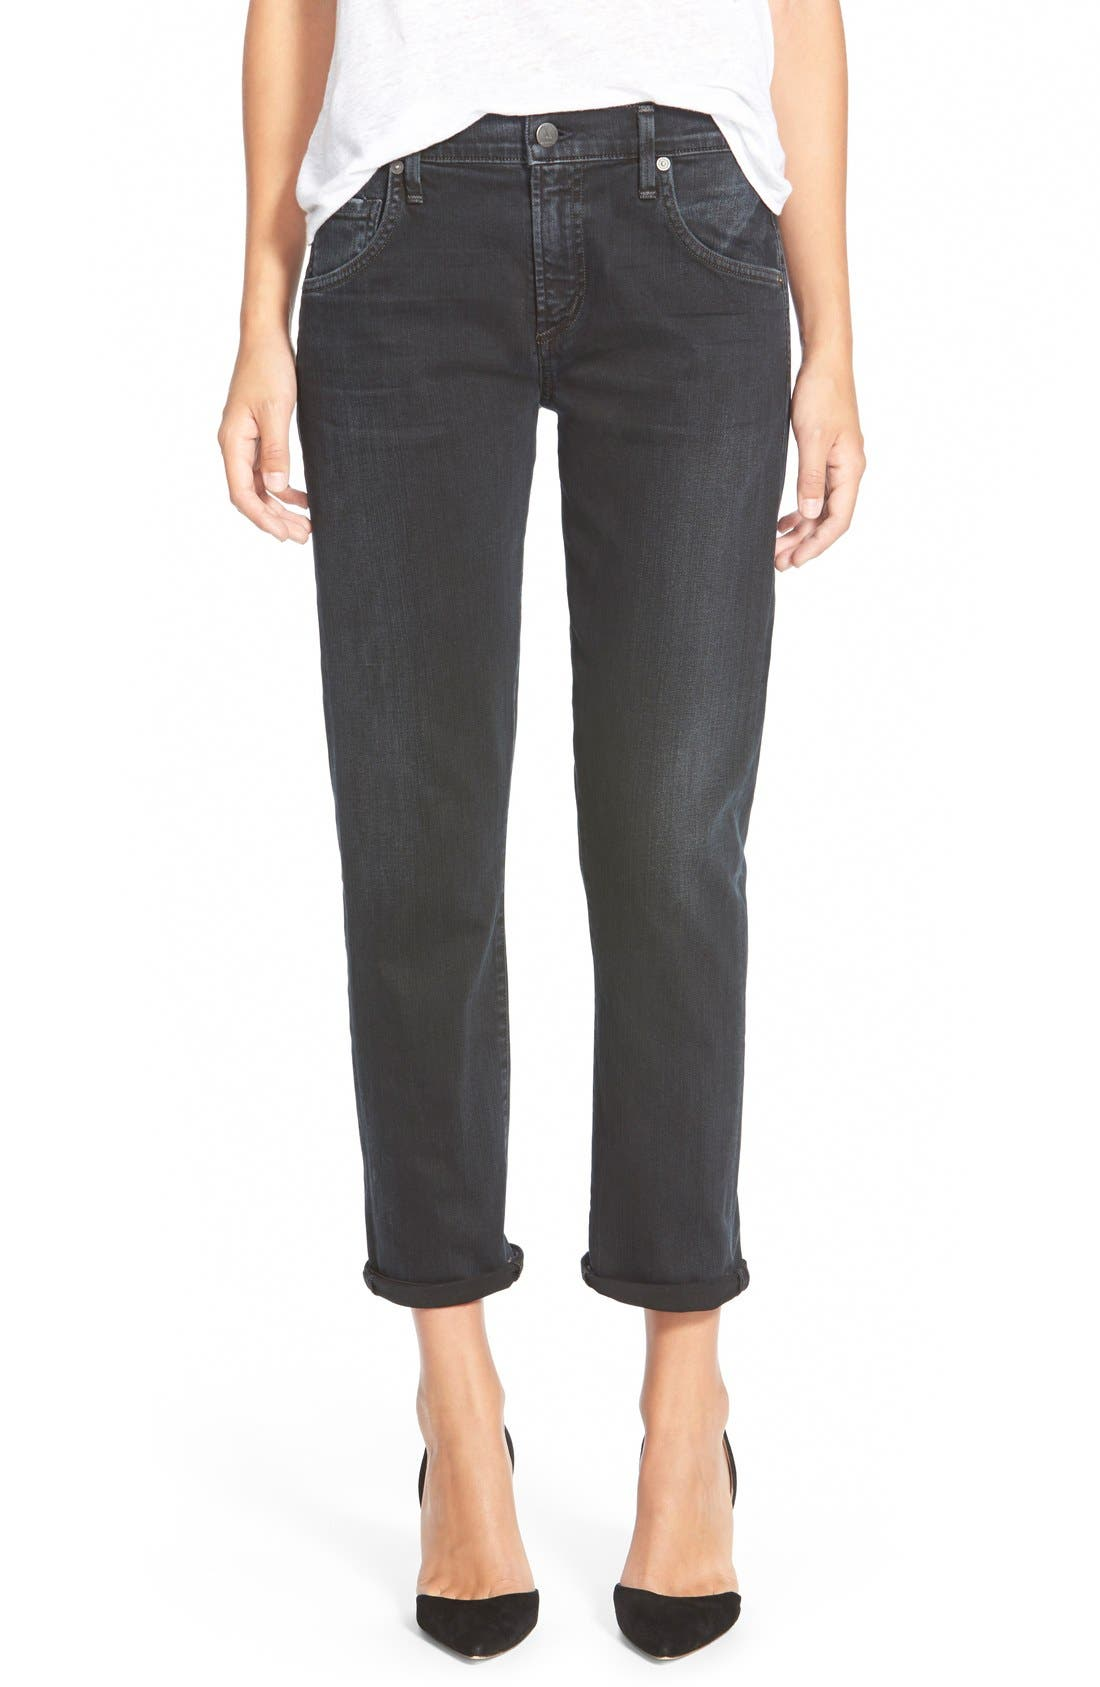 Alternate Image 1 Selected - Citizens of Humanity Emerson High Waist Boyfriend Slim Jeans